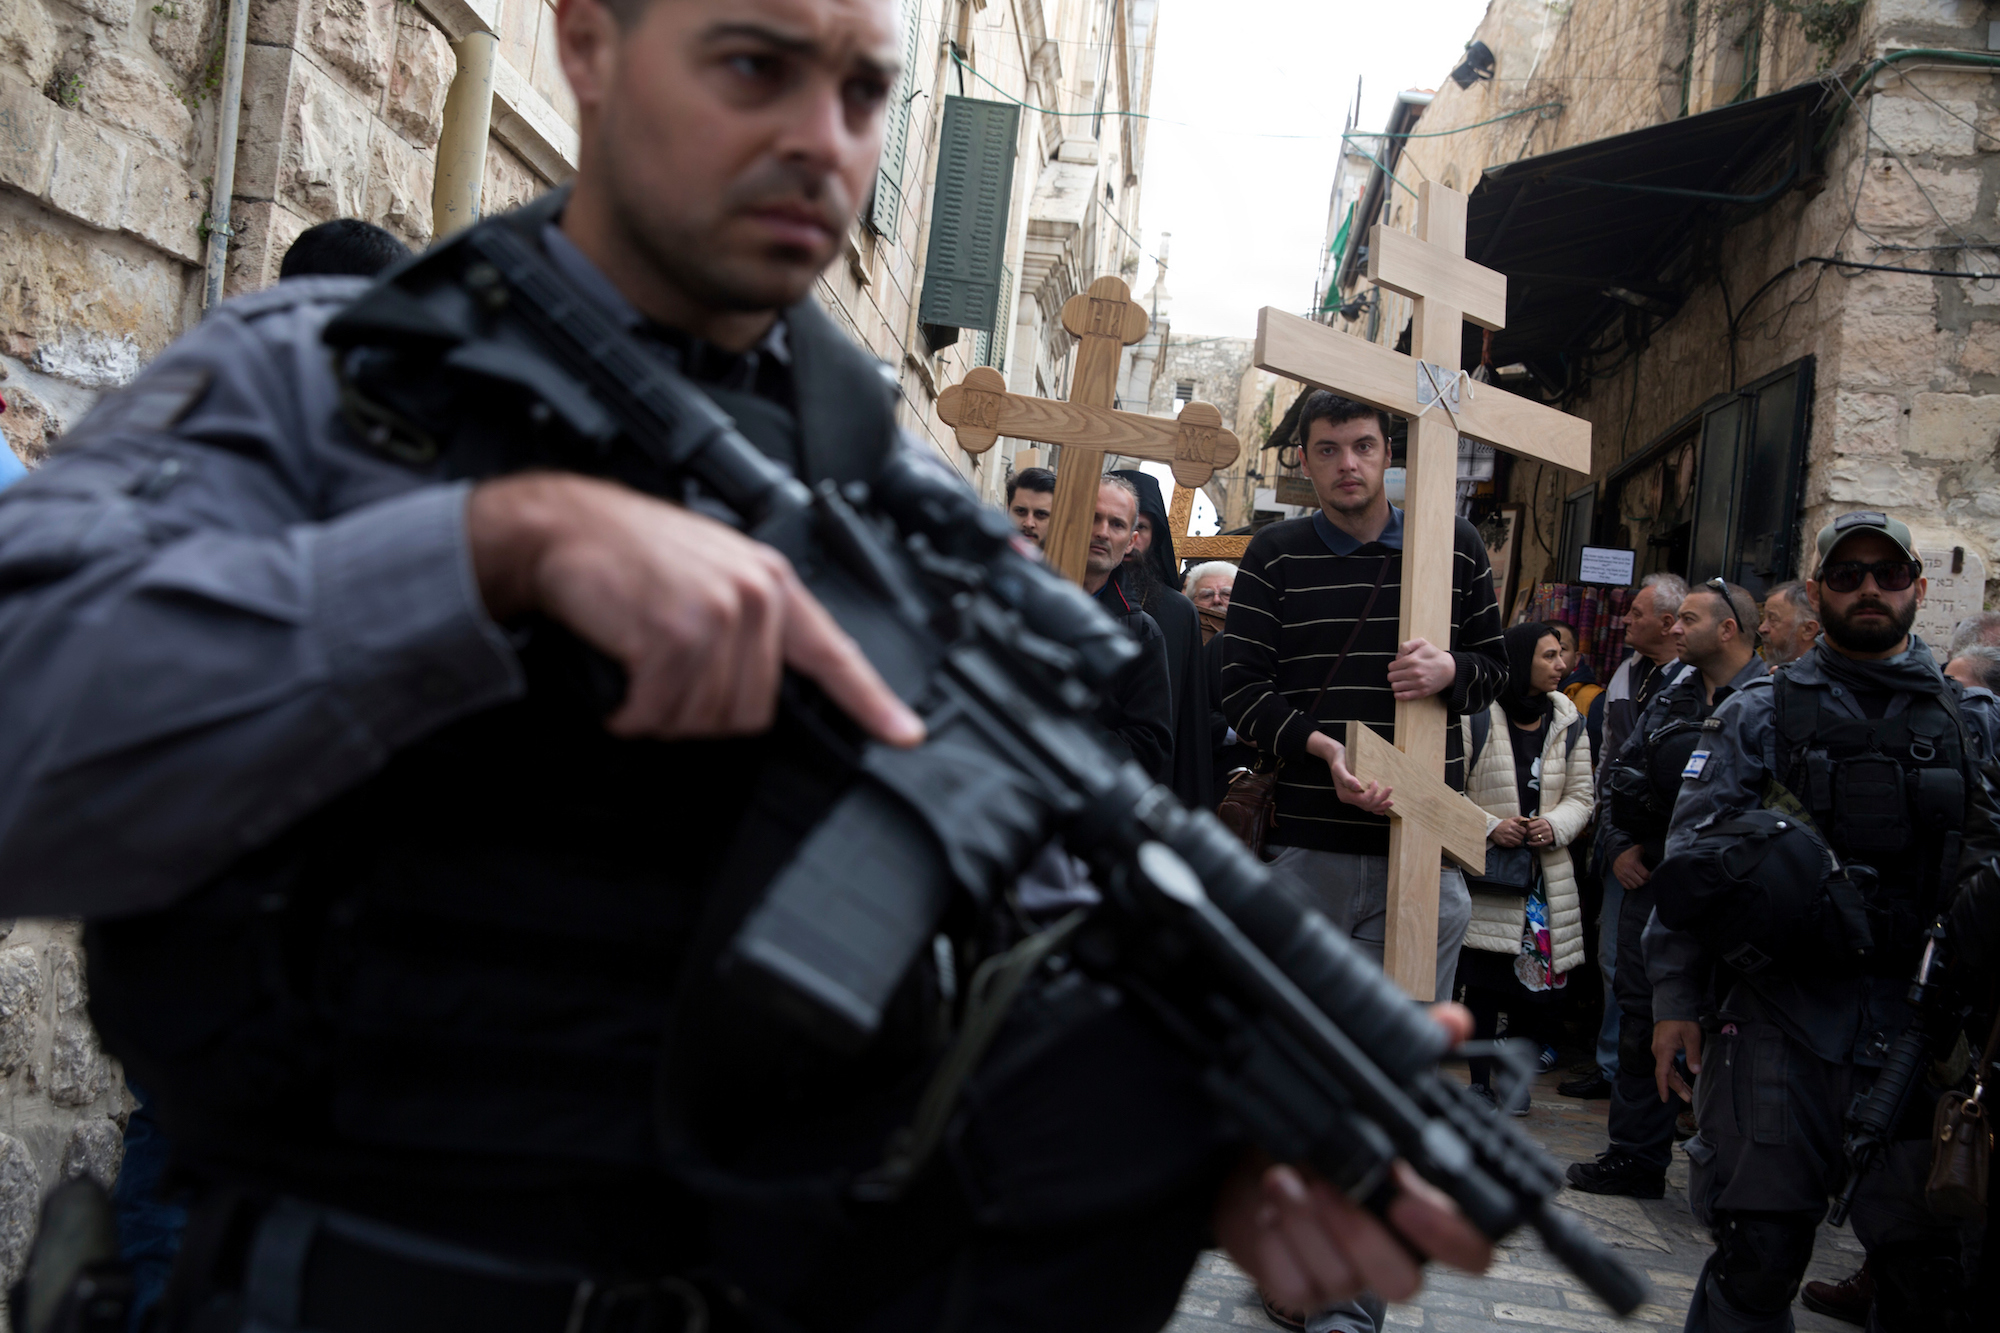 """Israeli border police stand guard as Christian pilgrims from Serbia carry wooden crosses along Via Dolorosa, or """"The Way of Sorrow"""" in the Old City of Jerusalem on April 14, 2017. Security was heightened in and around the Old City on Friday and through the Easter weekend after a 20-year-old British exchange student in Jerusalem was killed Friday in a stabbing attack, the latest in a reported wave of attacks by Palestinian militants that have taken the lives of 40 Israelis and two foreigners over the last 18 months. (Photo by Heidi Levine/GroundTruth)."""